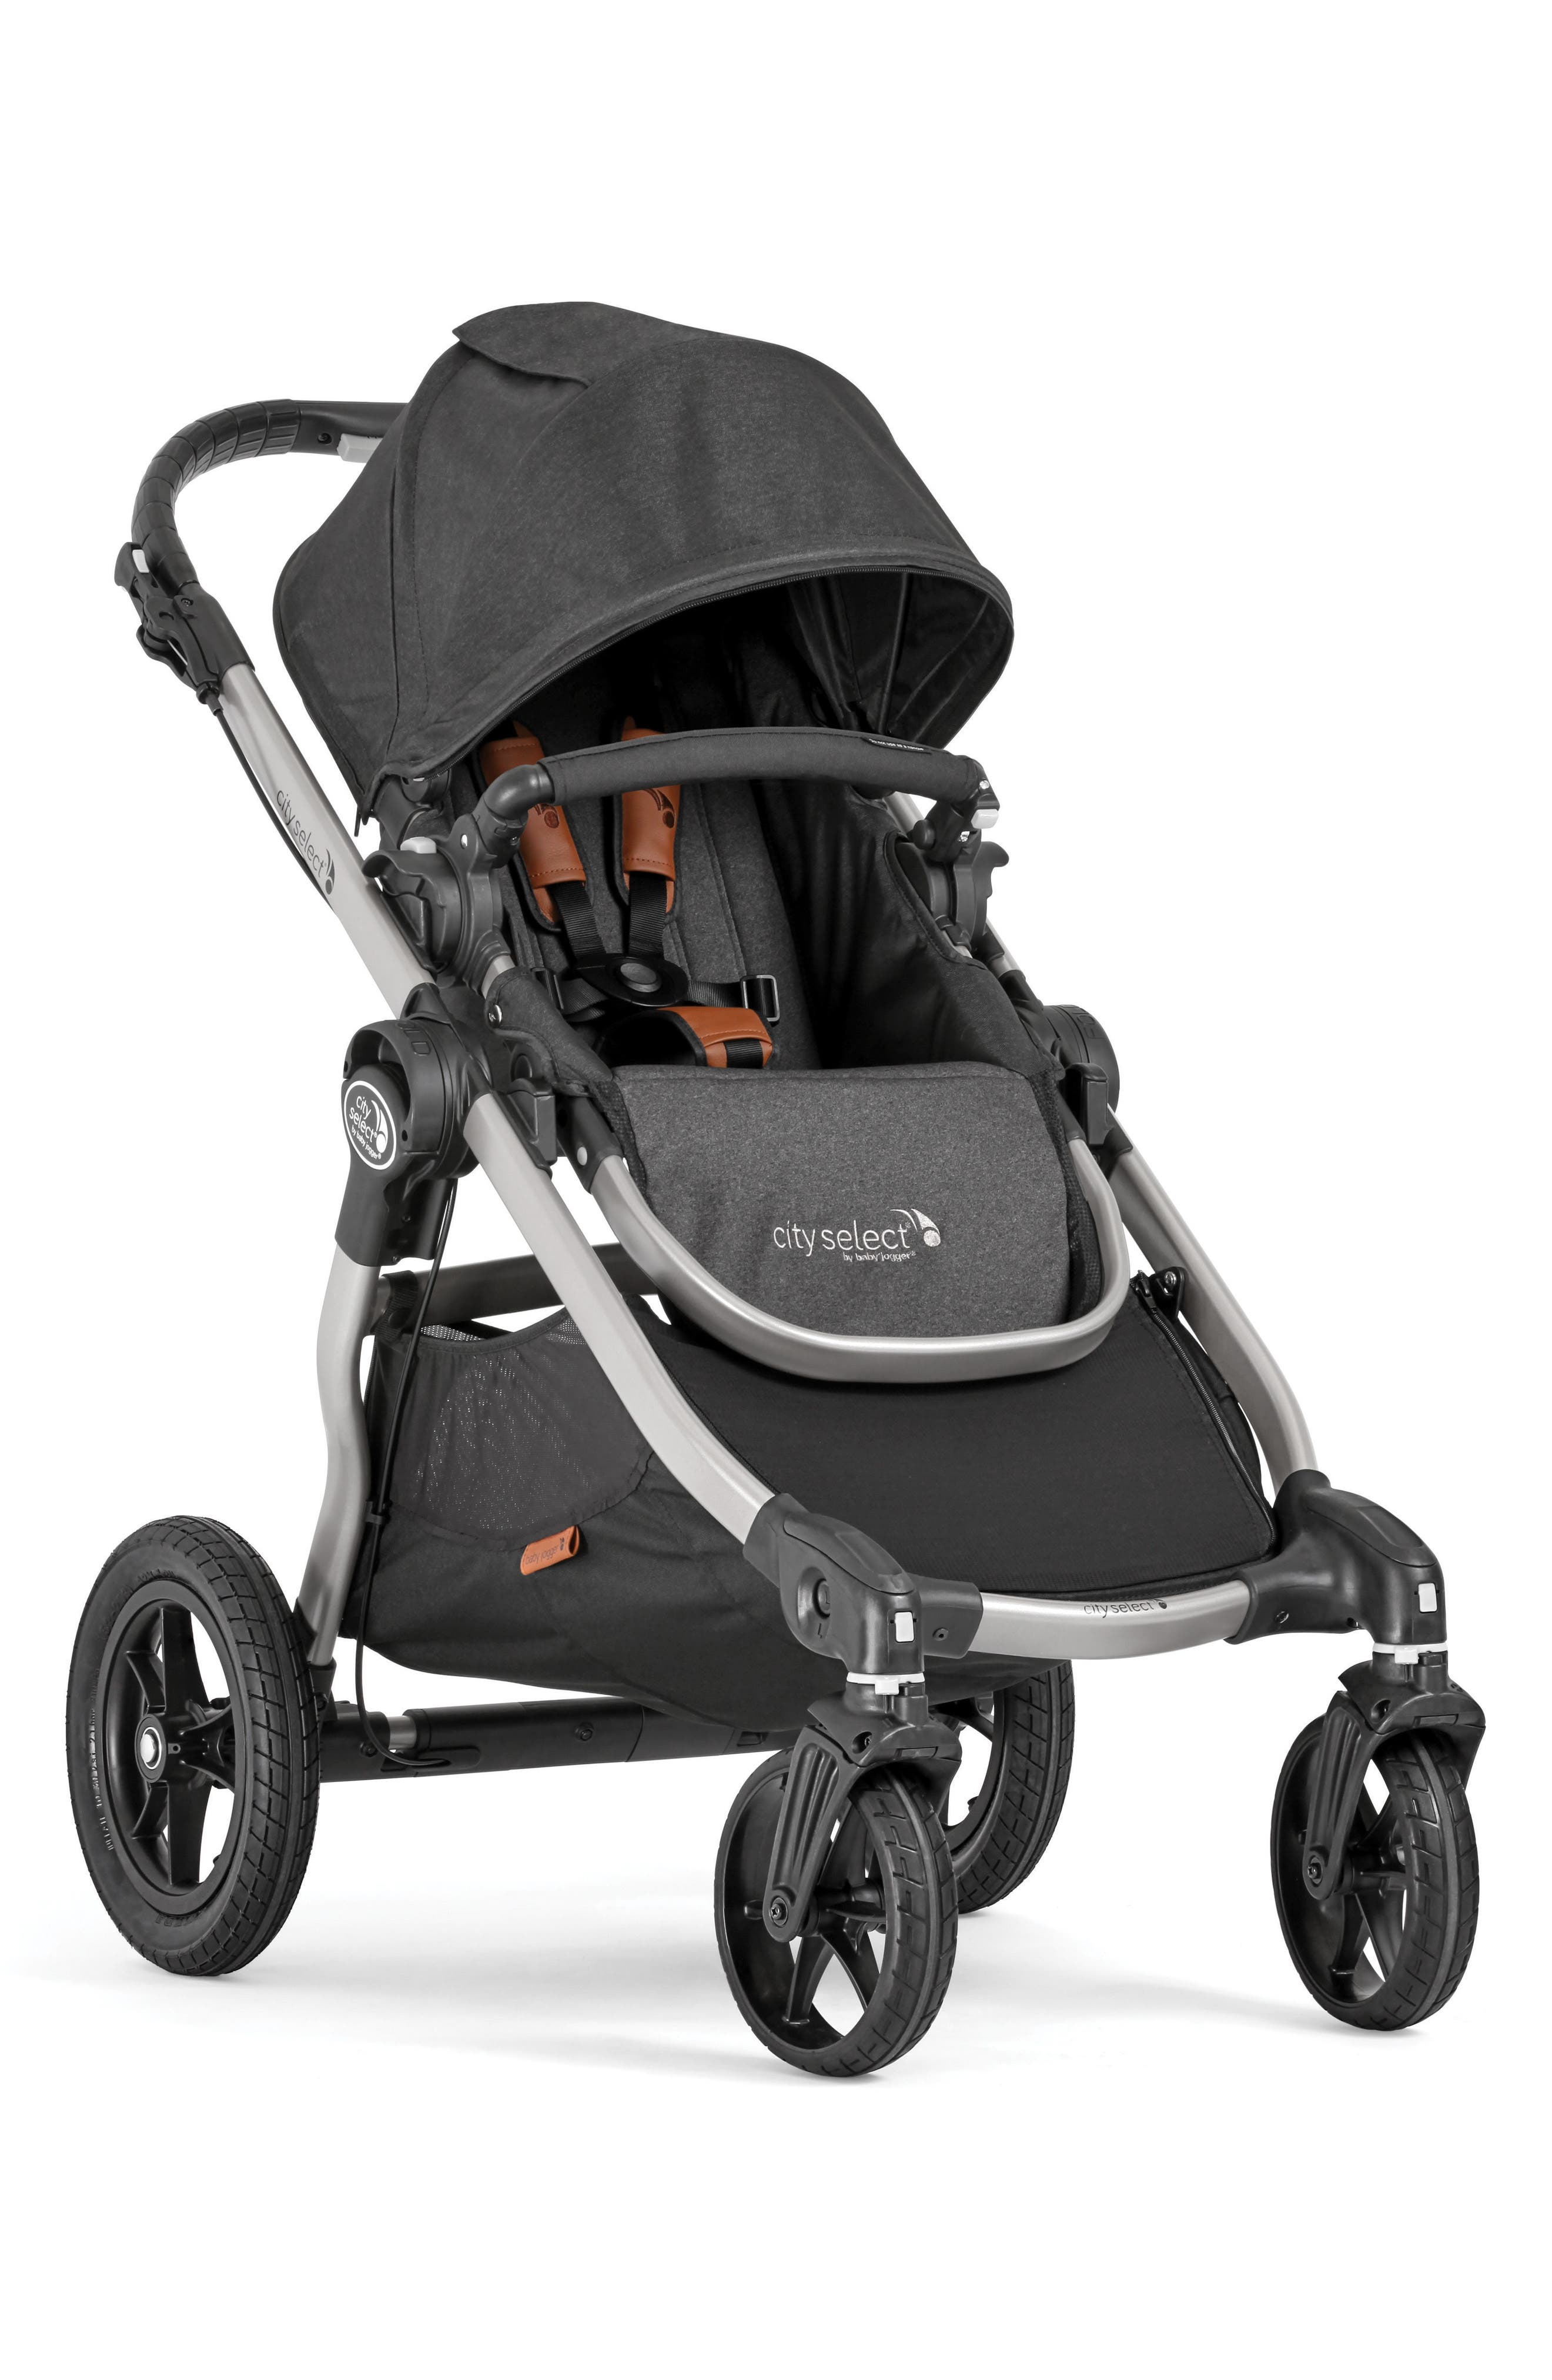 City Select<sup>®</sup> 2018 Special Edition 10-Year Anniversary Stroller,                             Main thumbnail 1, color,                             GREY